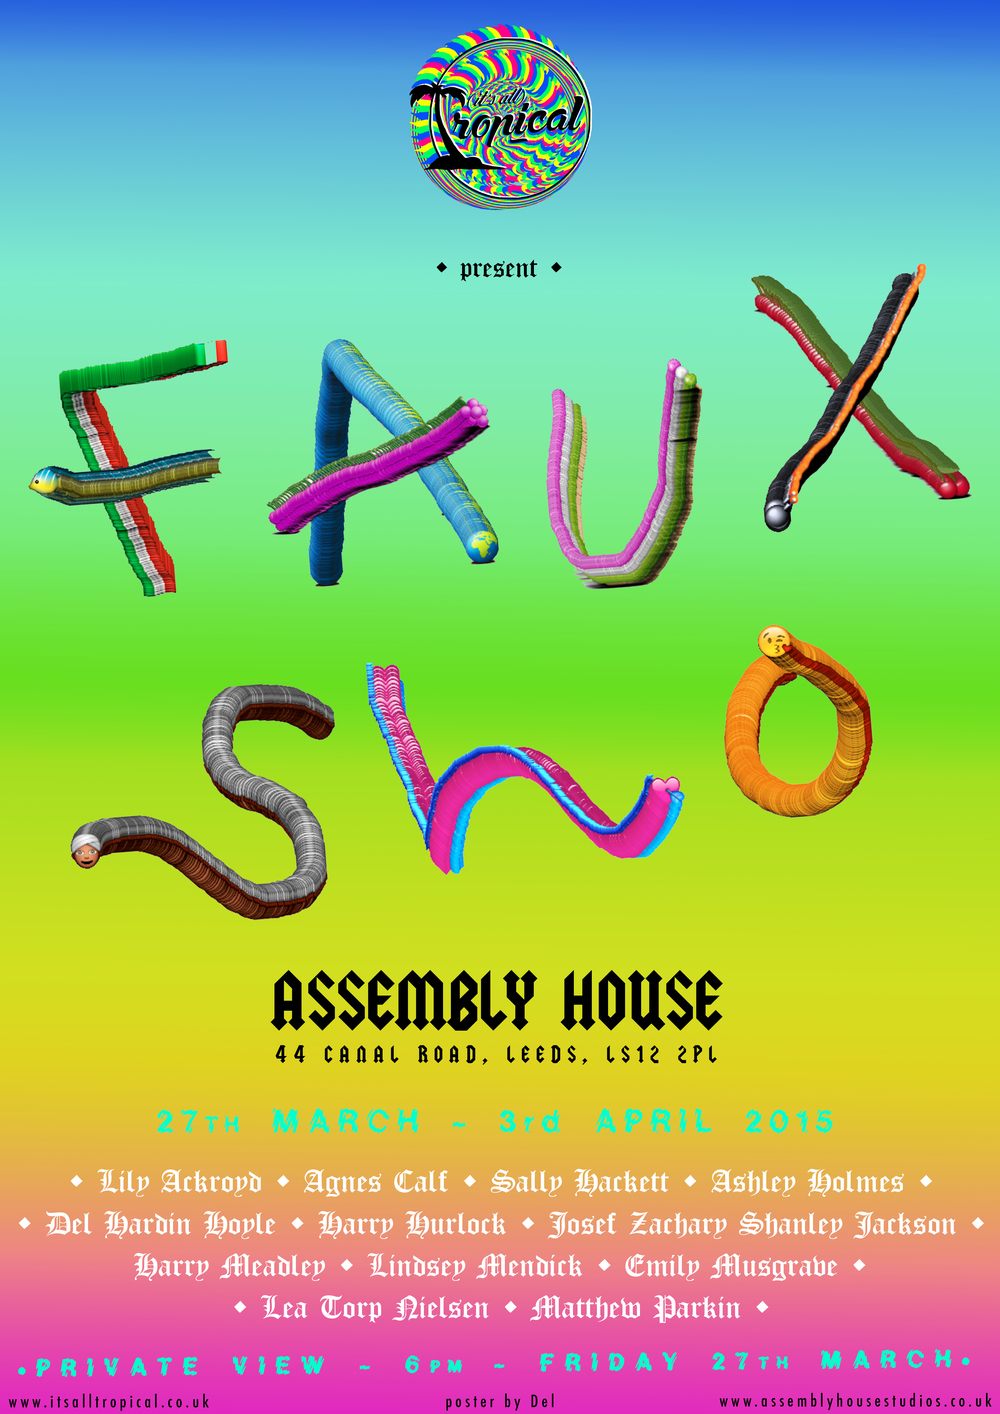 Faux Sho is a new group exhibition curated by (It's All) Tropical in conjunction with Assembly House Leeds. Featuring work by artists that celebrate the naïve failure of misappropriation and the beauty in delusions of grandeur, we want to rejoice in the fake and revel in the unnatural.     Utilising Umberto Eco's Travels in Hypereality as a point of juncture, Tropical will be exhibiting work that approaches this text from differing perspectives. The show will combine artists that admire, forge and take inspiration from the replica to incorporate an environment of artifice either in their practice or in the gallery setting.    Ashley Holmes Agnes Calf Emily Musgrave Harry Meadley Harry Hurlock Josef Zachary Shanley Jackson Lindsey Mendick Lily Ackroyd Mathew Parkin Sally Hackett Bruce Asbestos Hannah Dinsdale Benjamin Edwin Slinger Racheal Crowther Graeme Durant Jack Fisher Oscar Godfrey Helena Kate Whittingham Zadie Xa Joe Horner Alex Glass Mark Essen MALAXA Bex Massey Elizabeth Murphy Caitlin Merrett King Luke Nairn Jemma Egan Claudia Dance-Wells Lizzie Feather Dale Holmes      PRIVATE VIEW MARCH 27TH 6-9PM